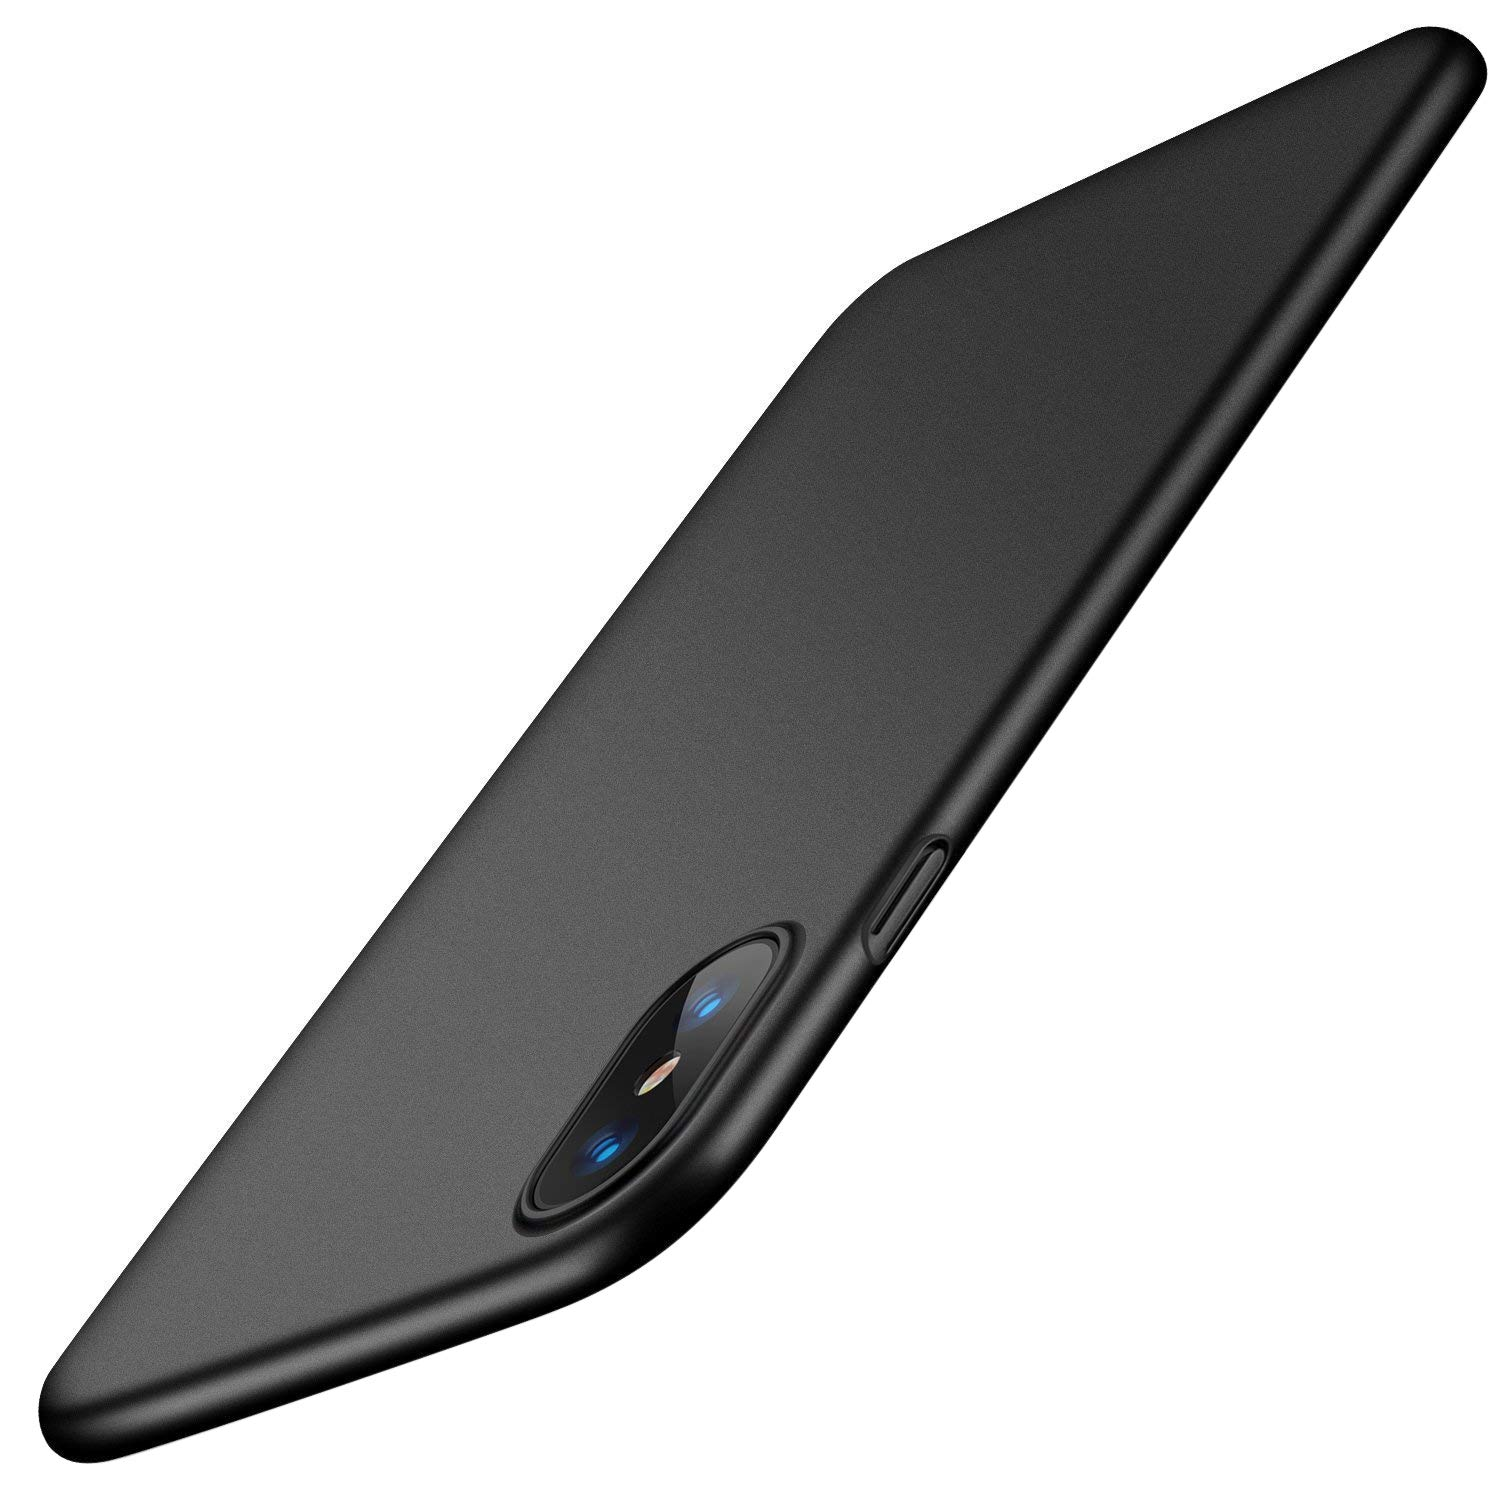 TORRAS Slim Fit iPhone XS Case/iPhone X Case, Hard Plastic PC Super Thin Mobile Phone Cover Case with Matte Finish Coating Grip Compatible with iPhone X/iPhone XS 5.8 inch, Space Black